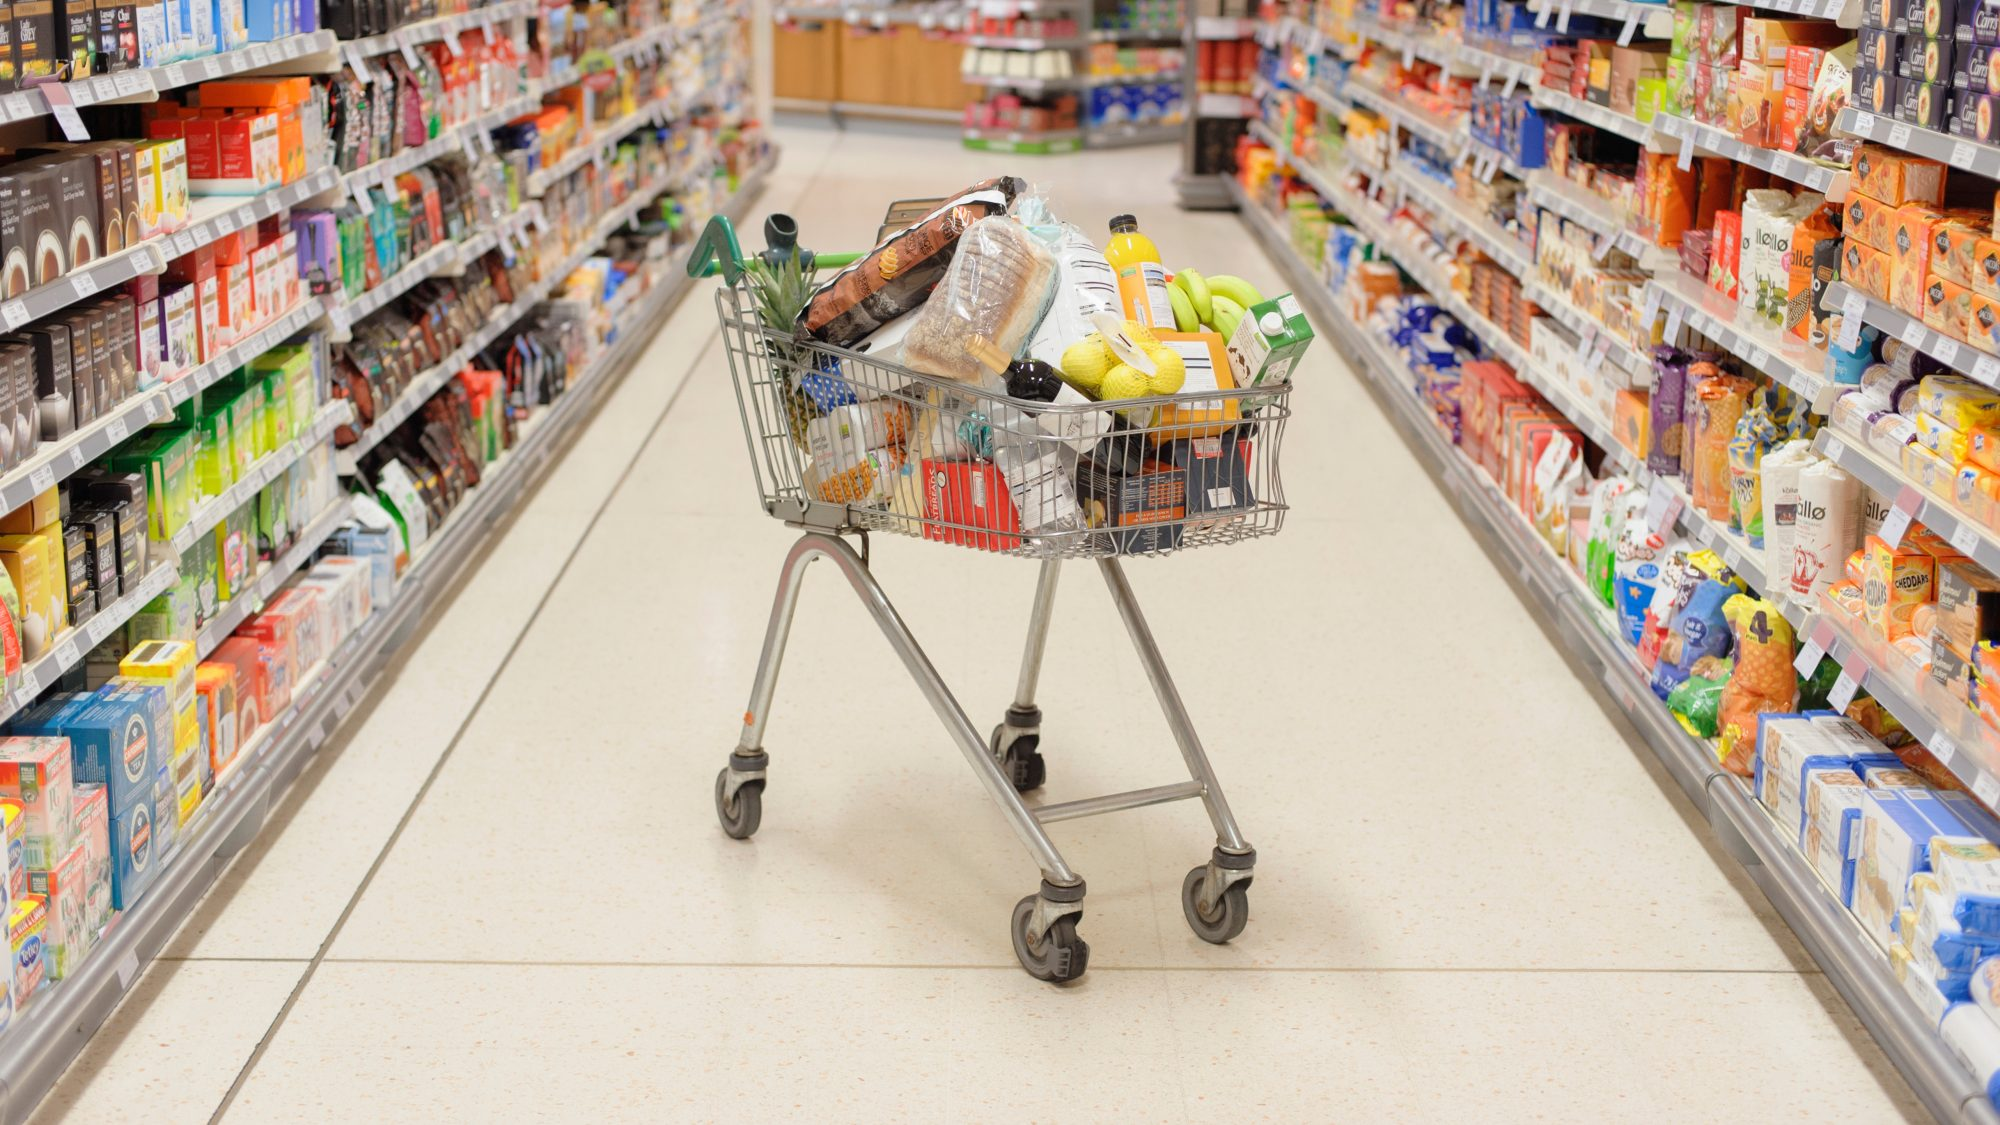 shop grocery stores safely during coronavirus pandemic: shopping cart filled with groceries